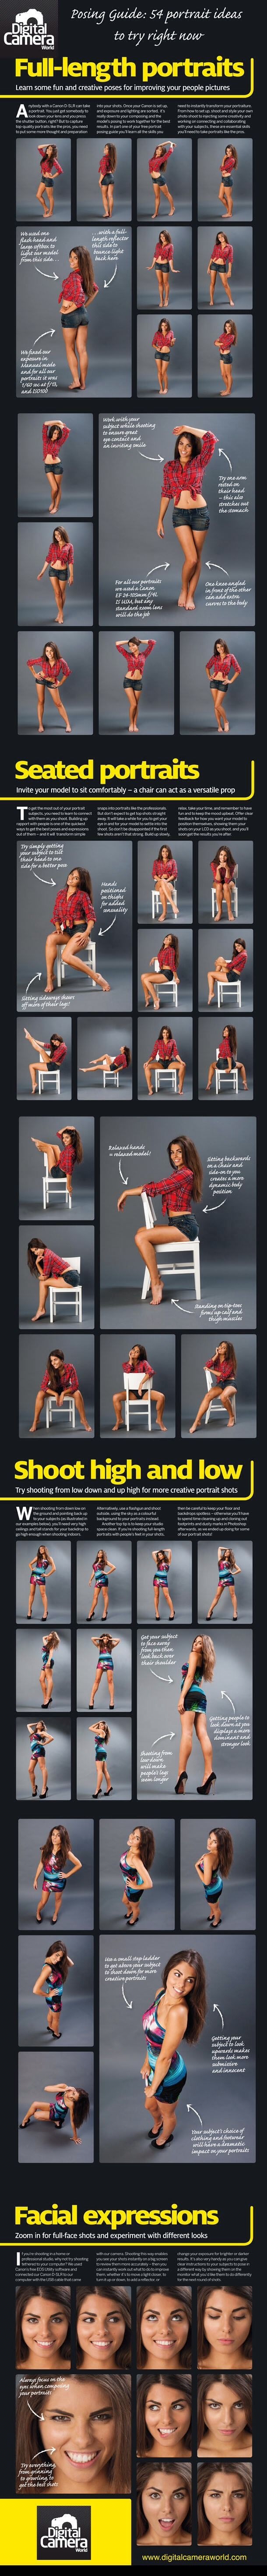 Get Creative In Front Of The Camera. How To Pose. #Beauty #Trusper #Tip